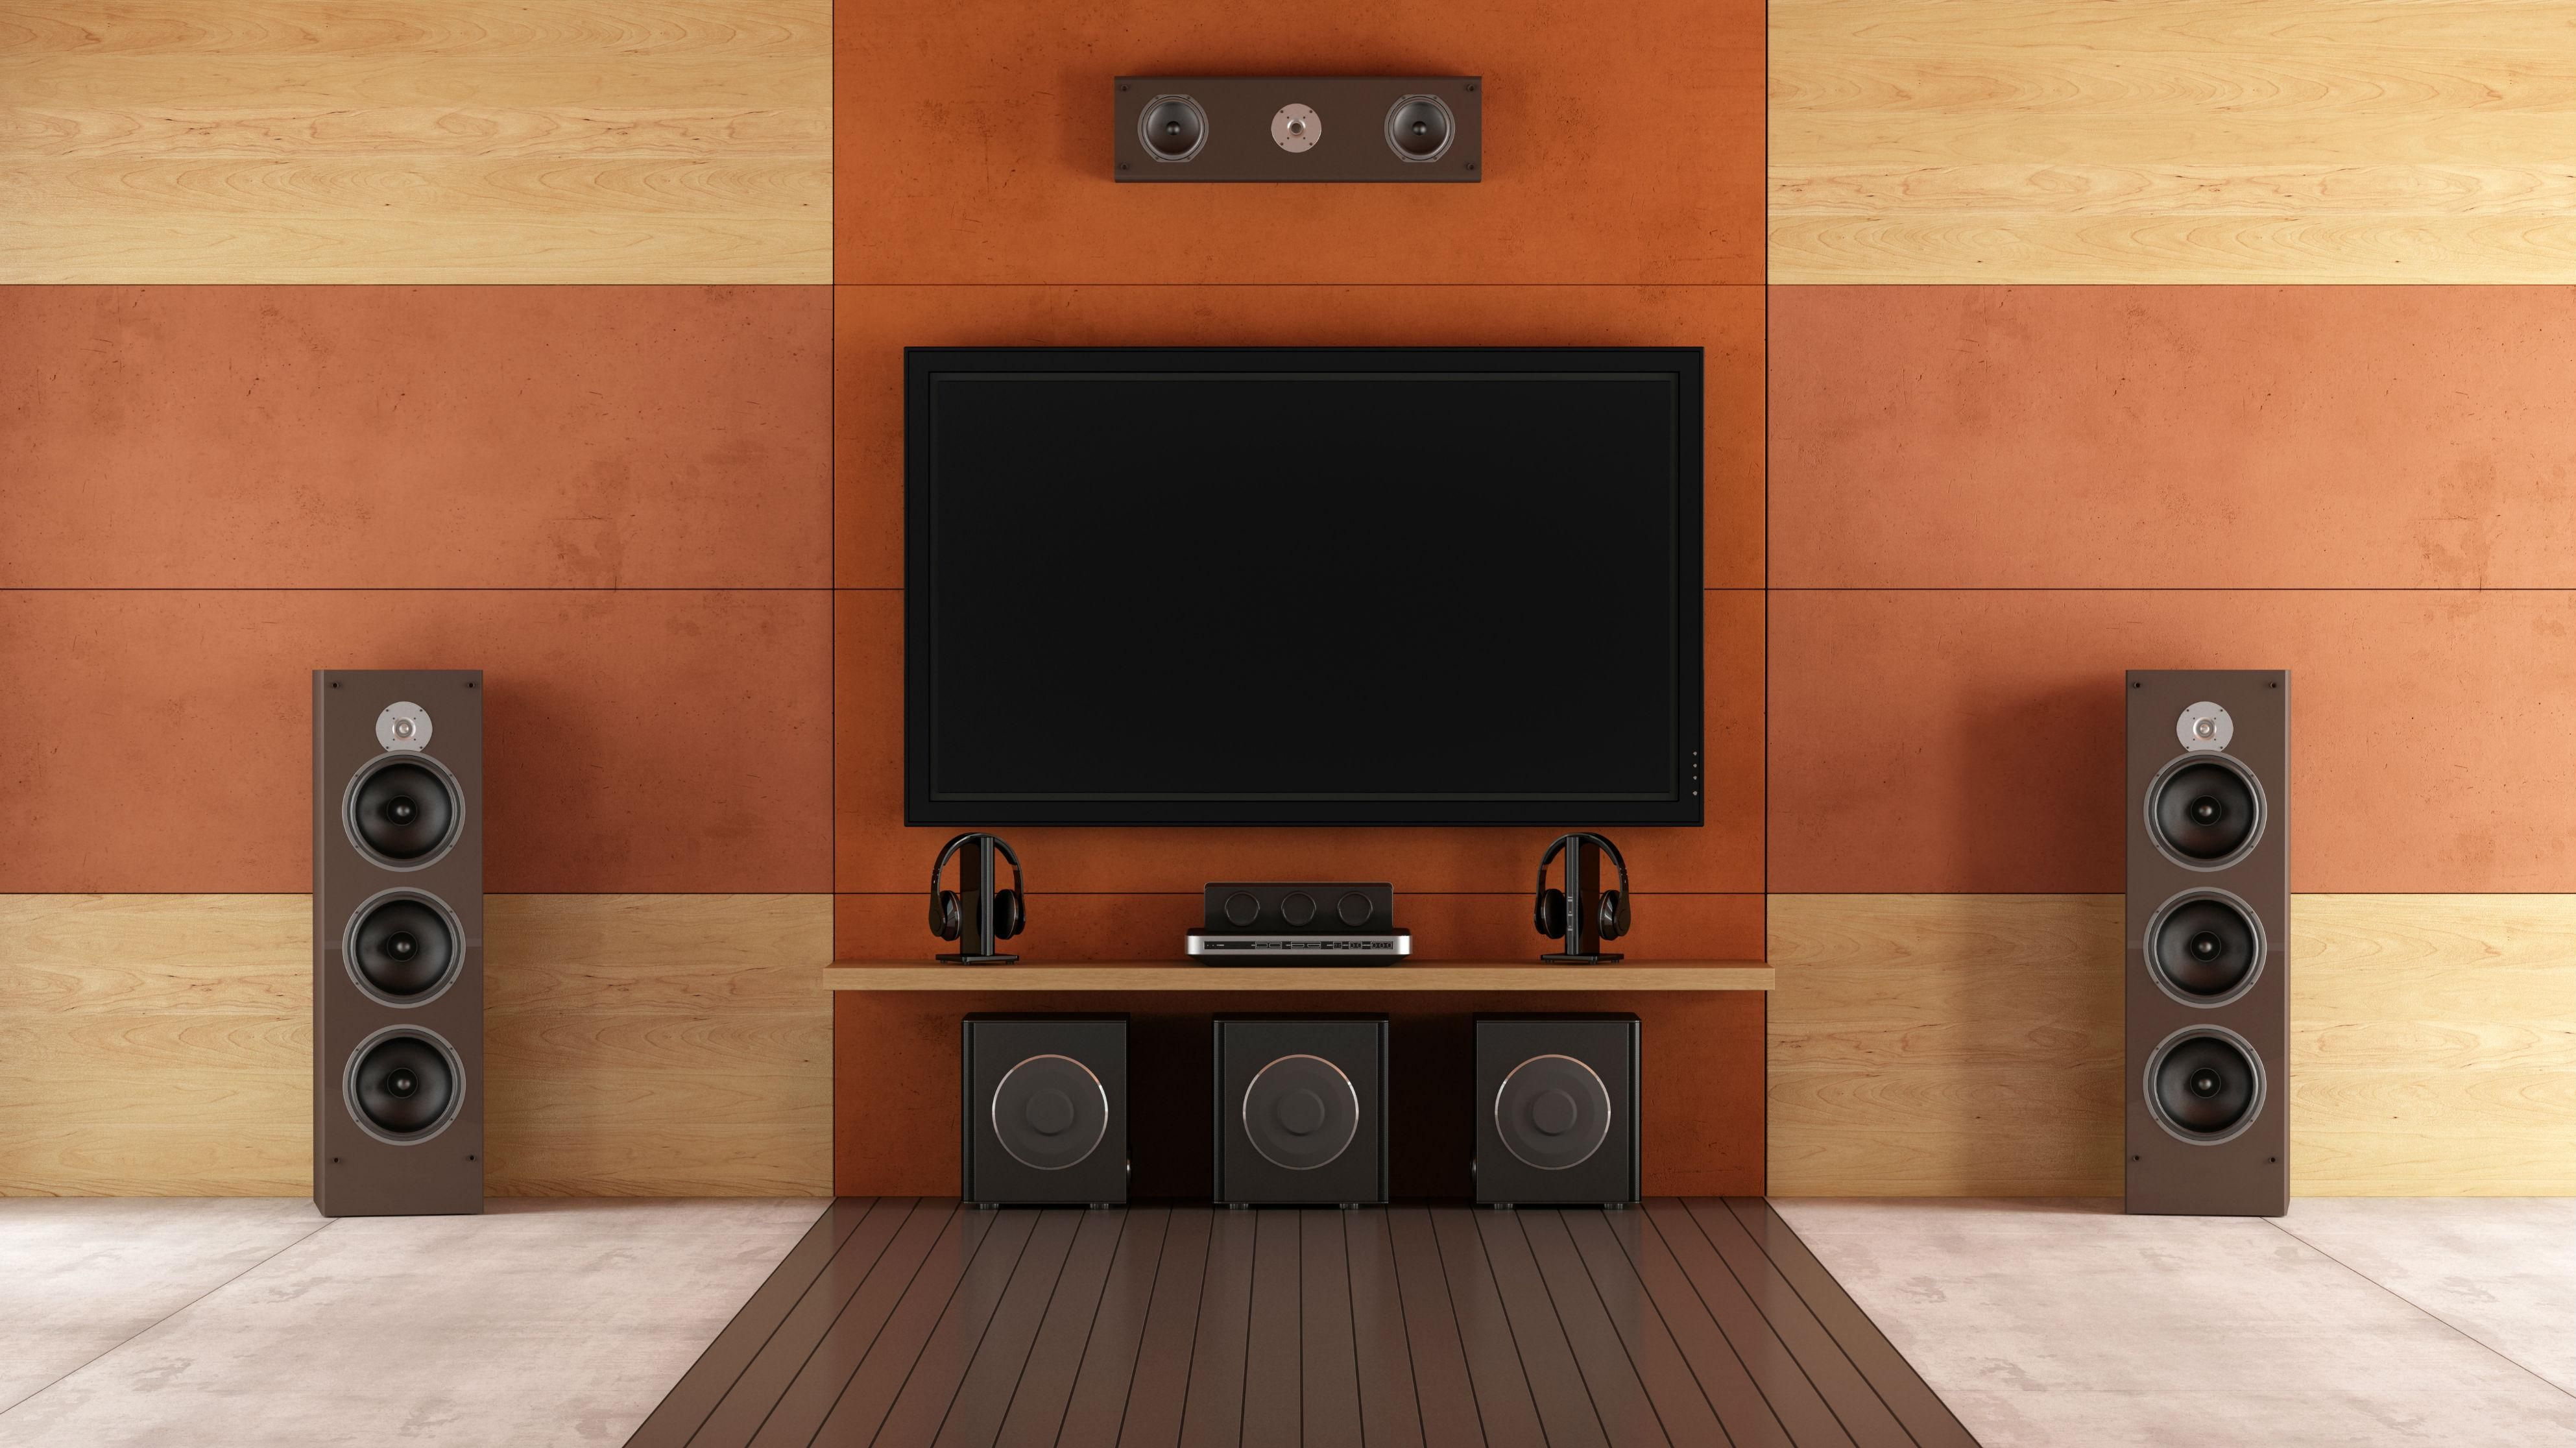 Nfl Highlights Channel Coming To Youtube Speakers Home Theater